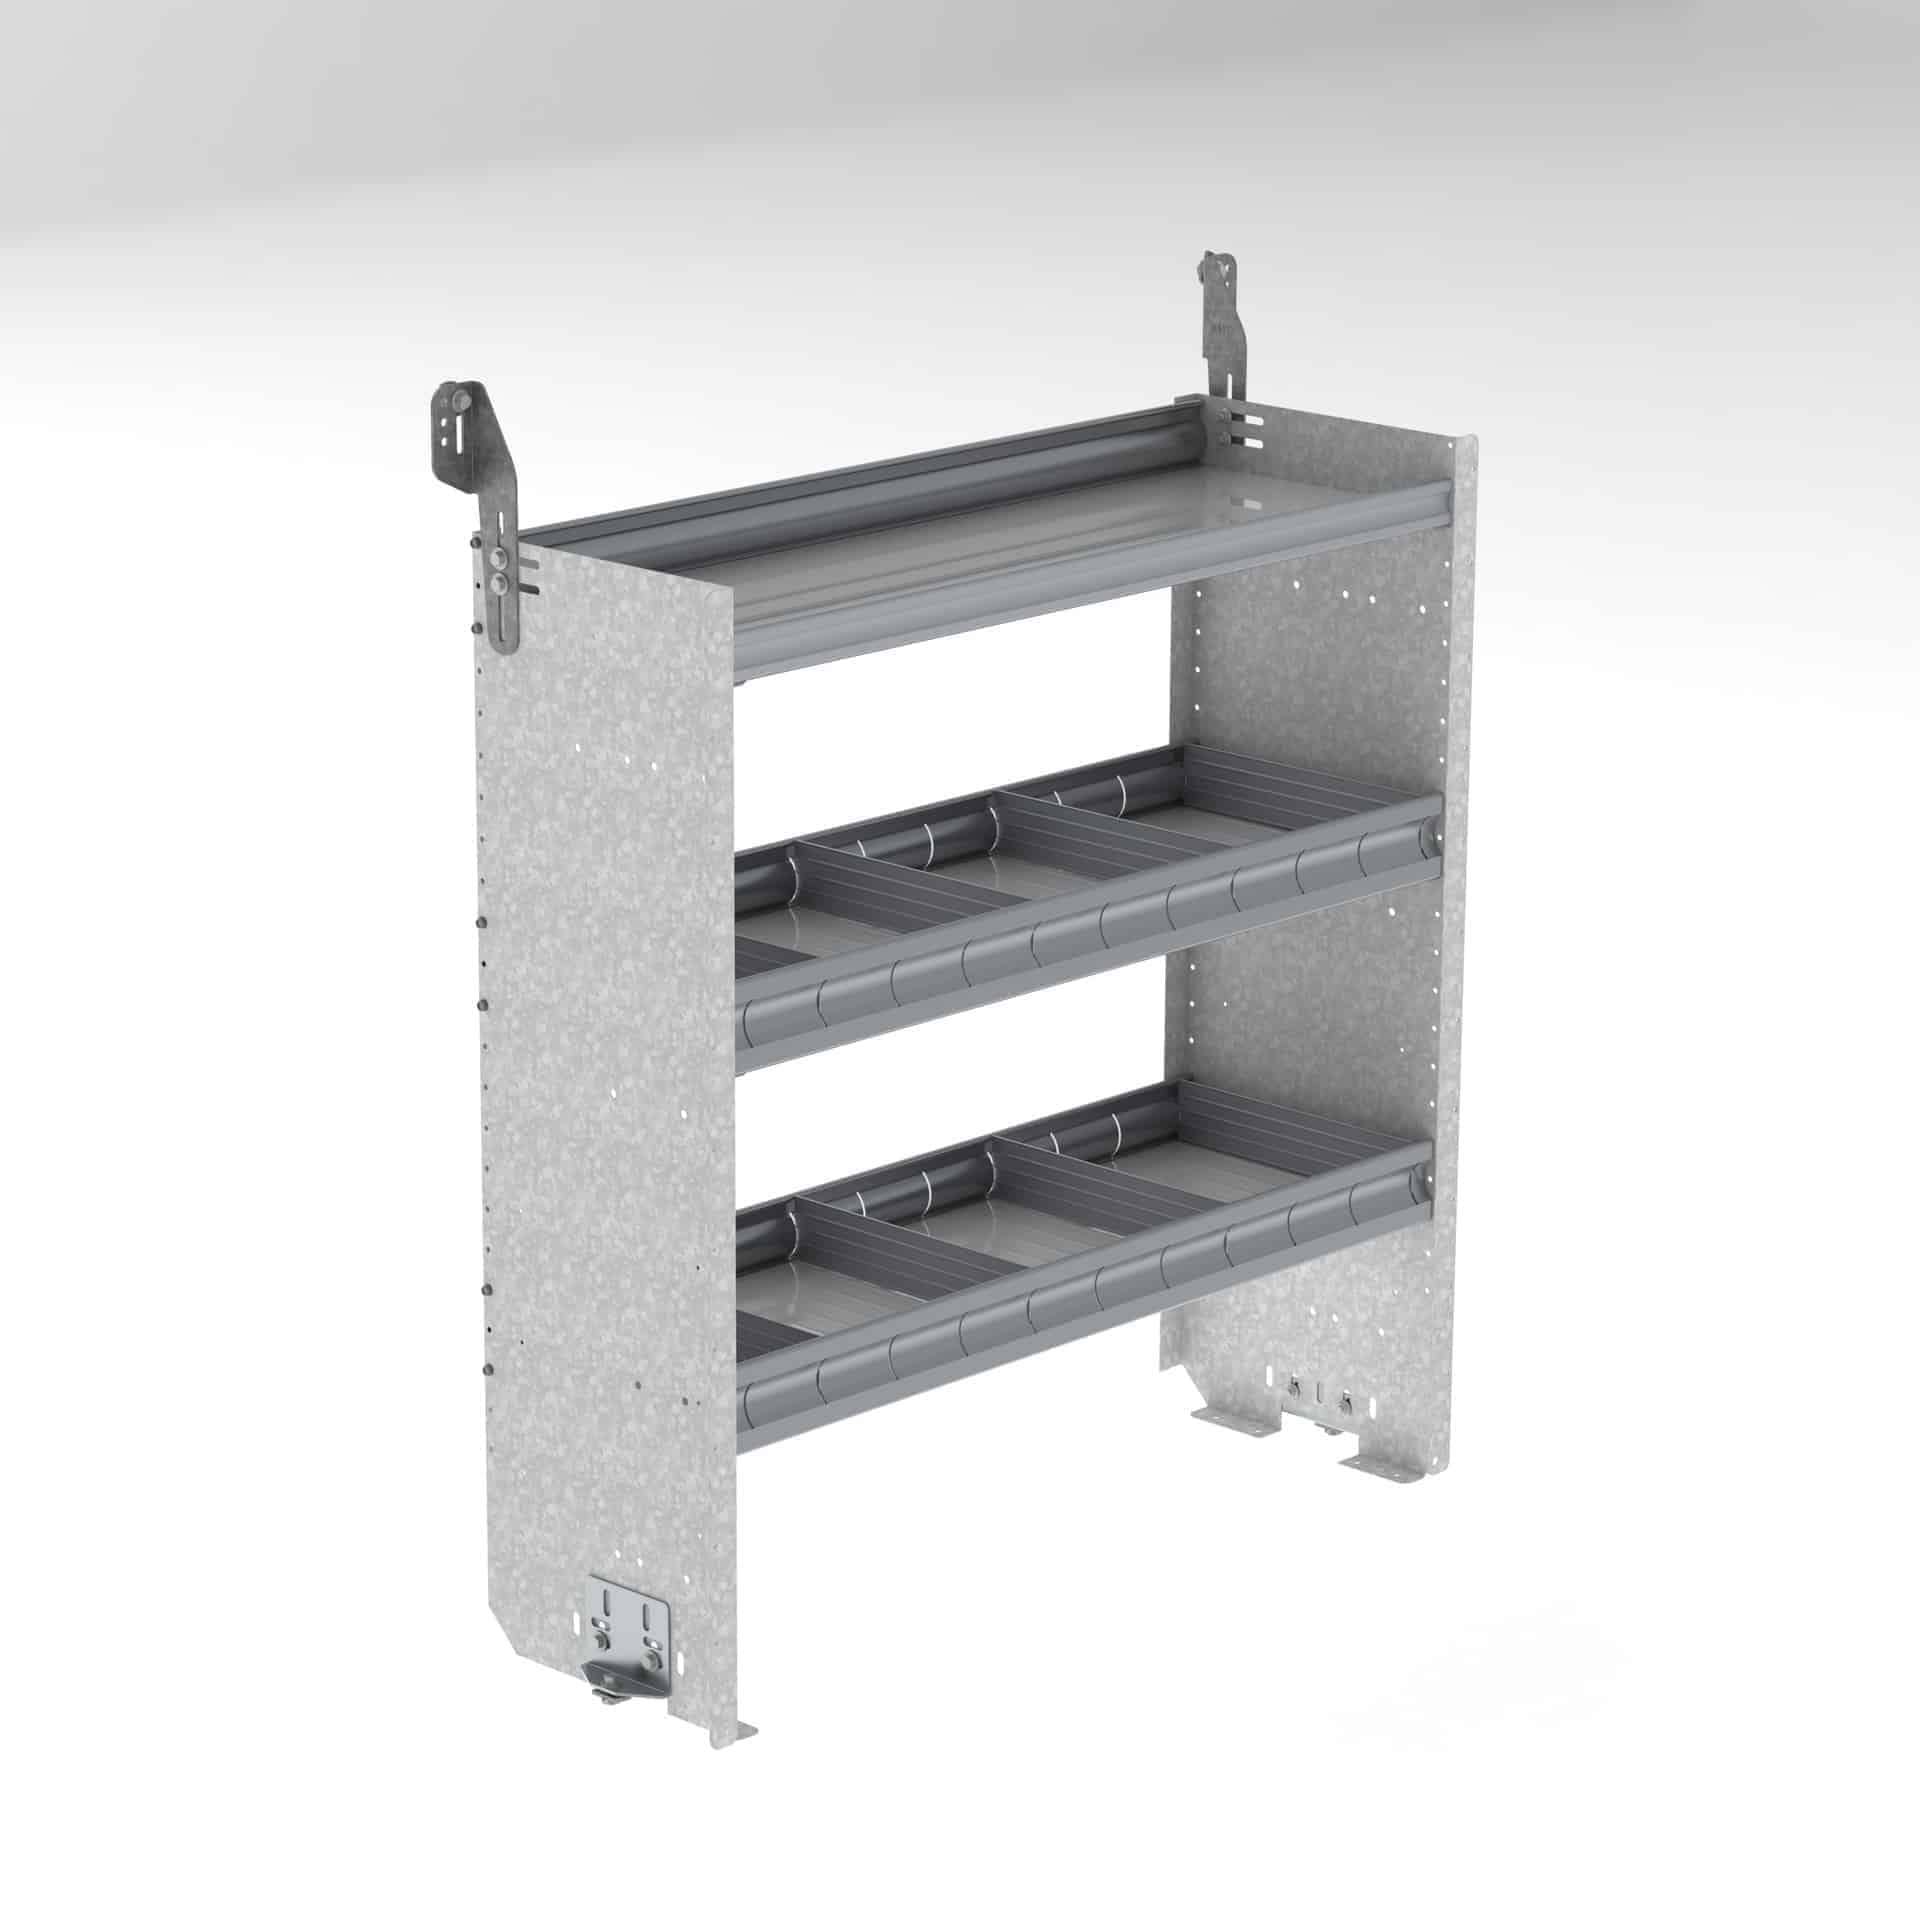 Ford-Transit-Shelving-System-Square-Back-Also-Fits-Nissan-NV-LR-F42-R